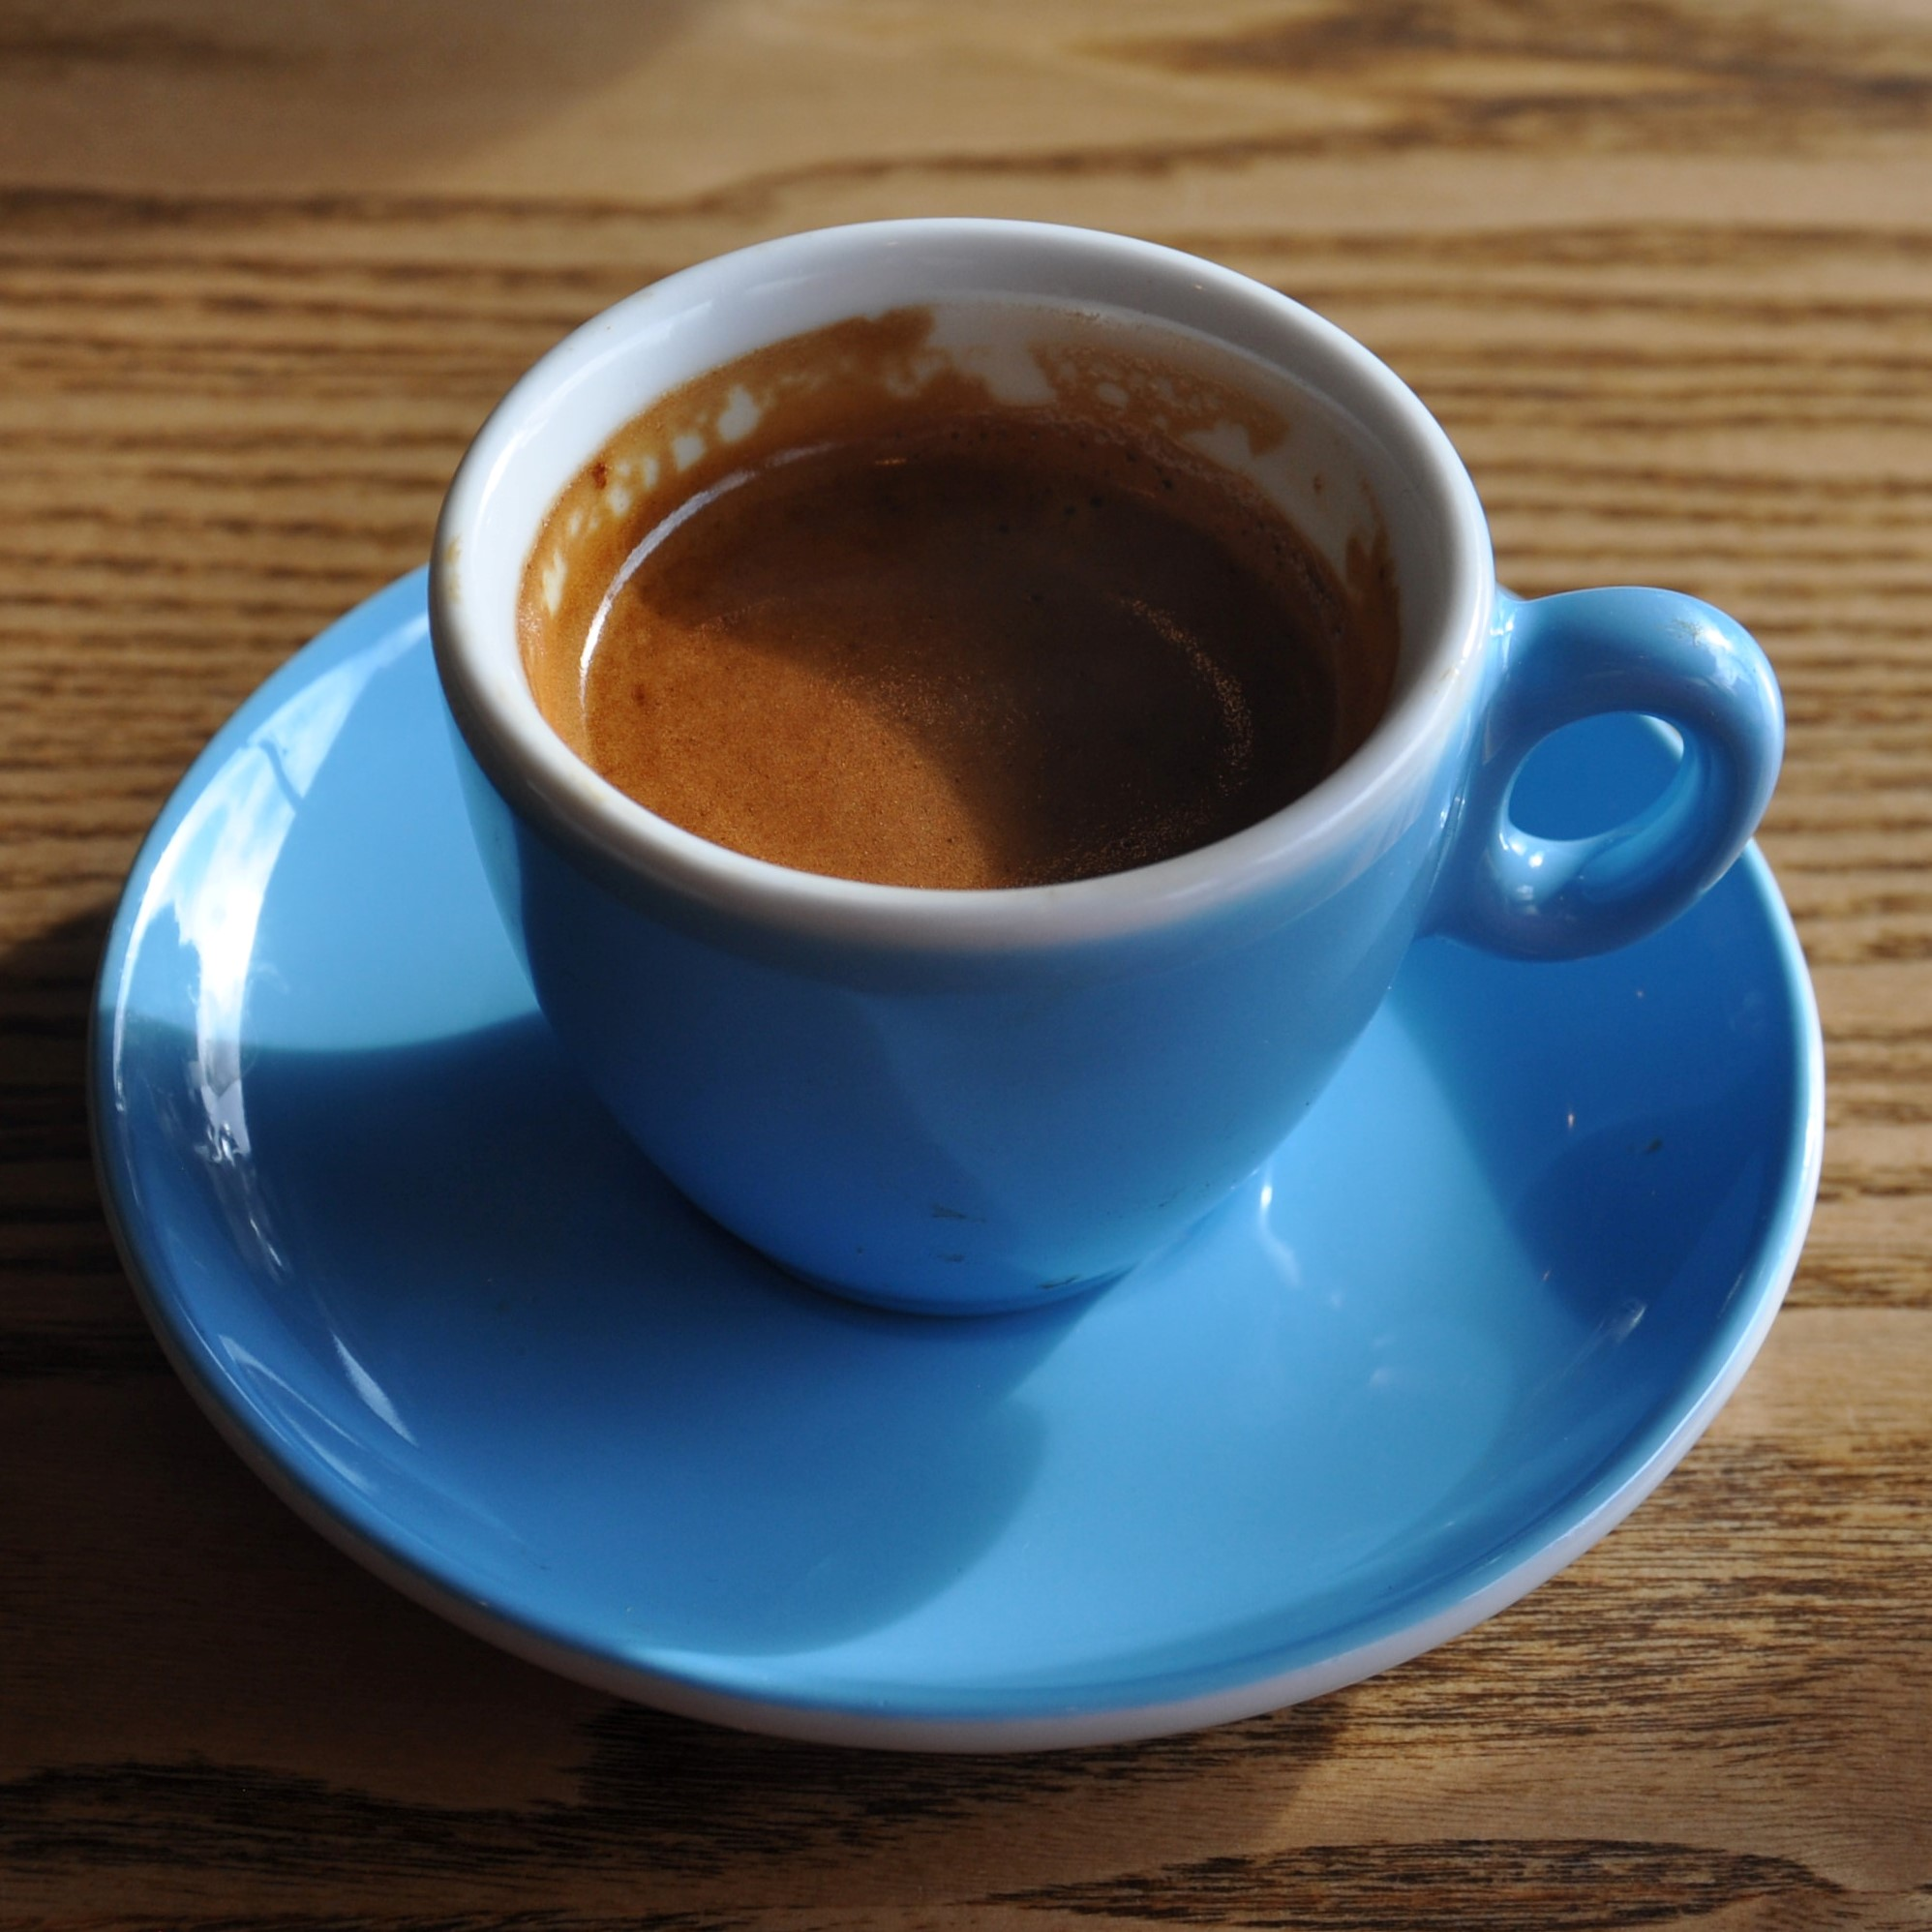 A single-origin Colombian espresso from Ballies in Belfast, served as the house-espresso in District, looking resplendent in its classic blue cup.